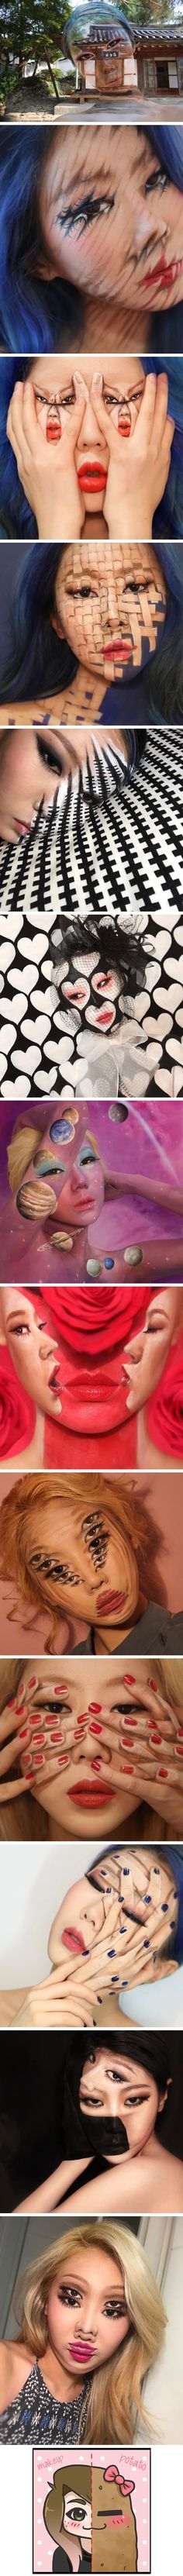 Artist Transforms Herself Into Mind Bending Optical Illusions Without Photoshop - 9GAG